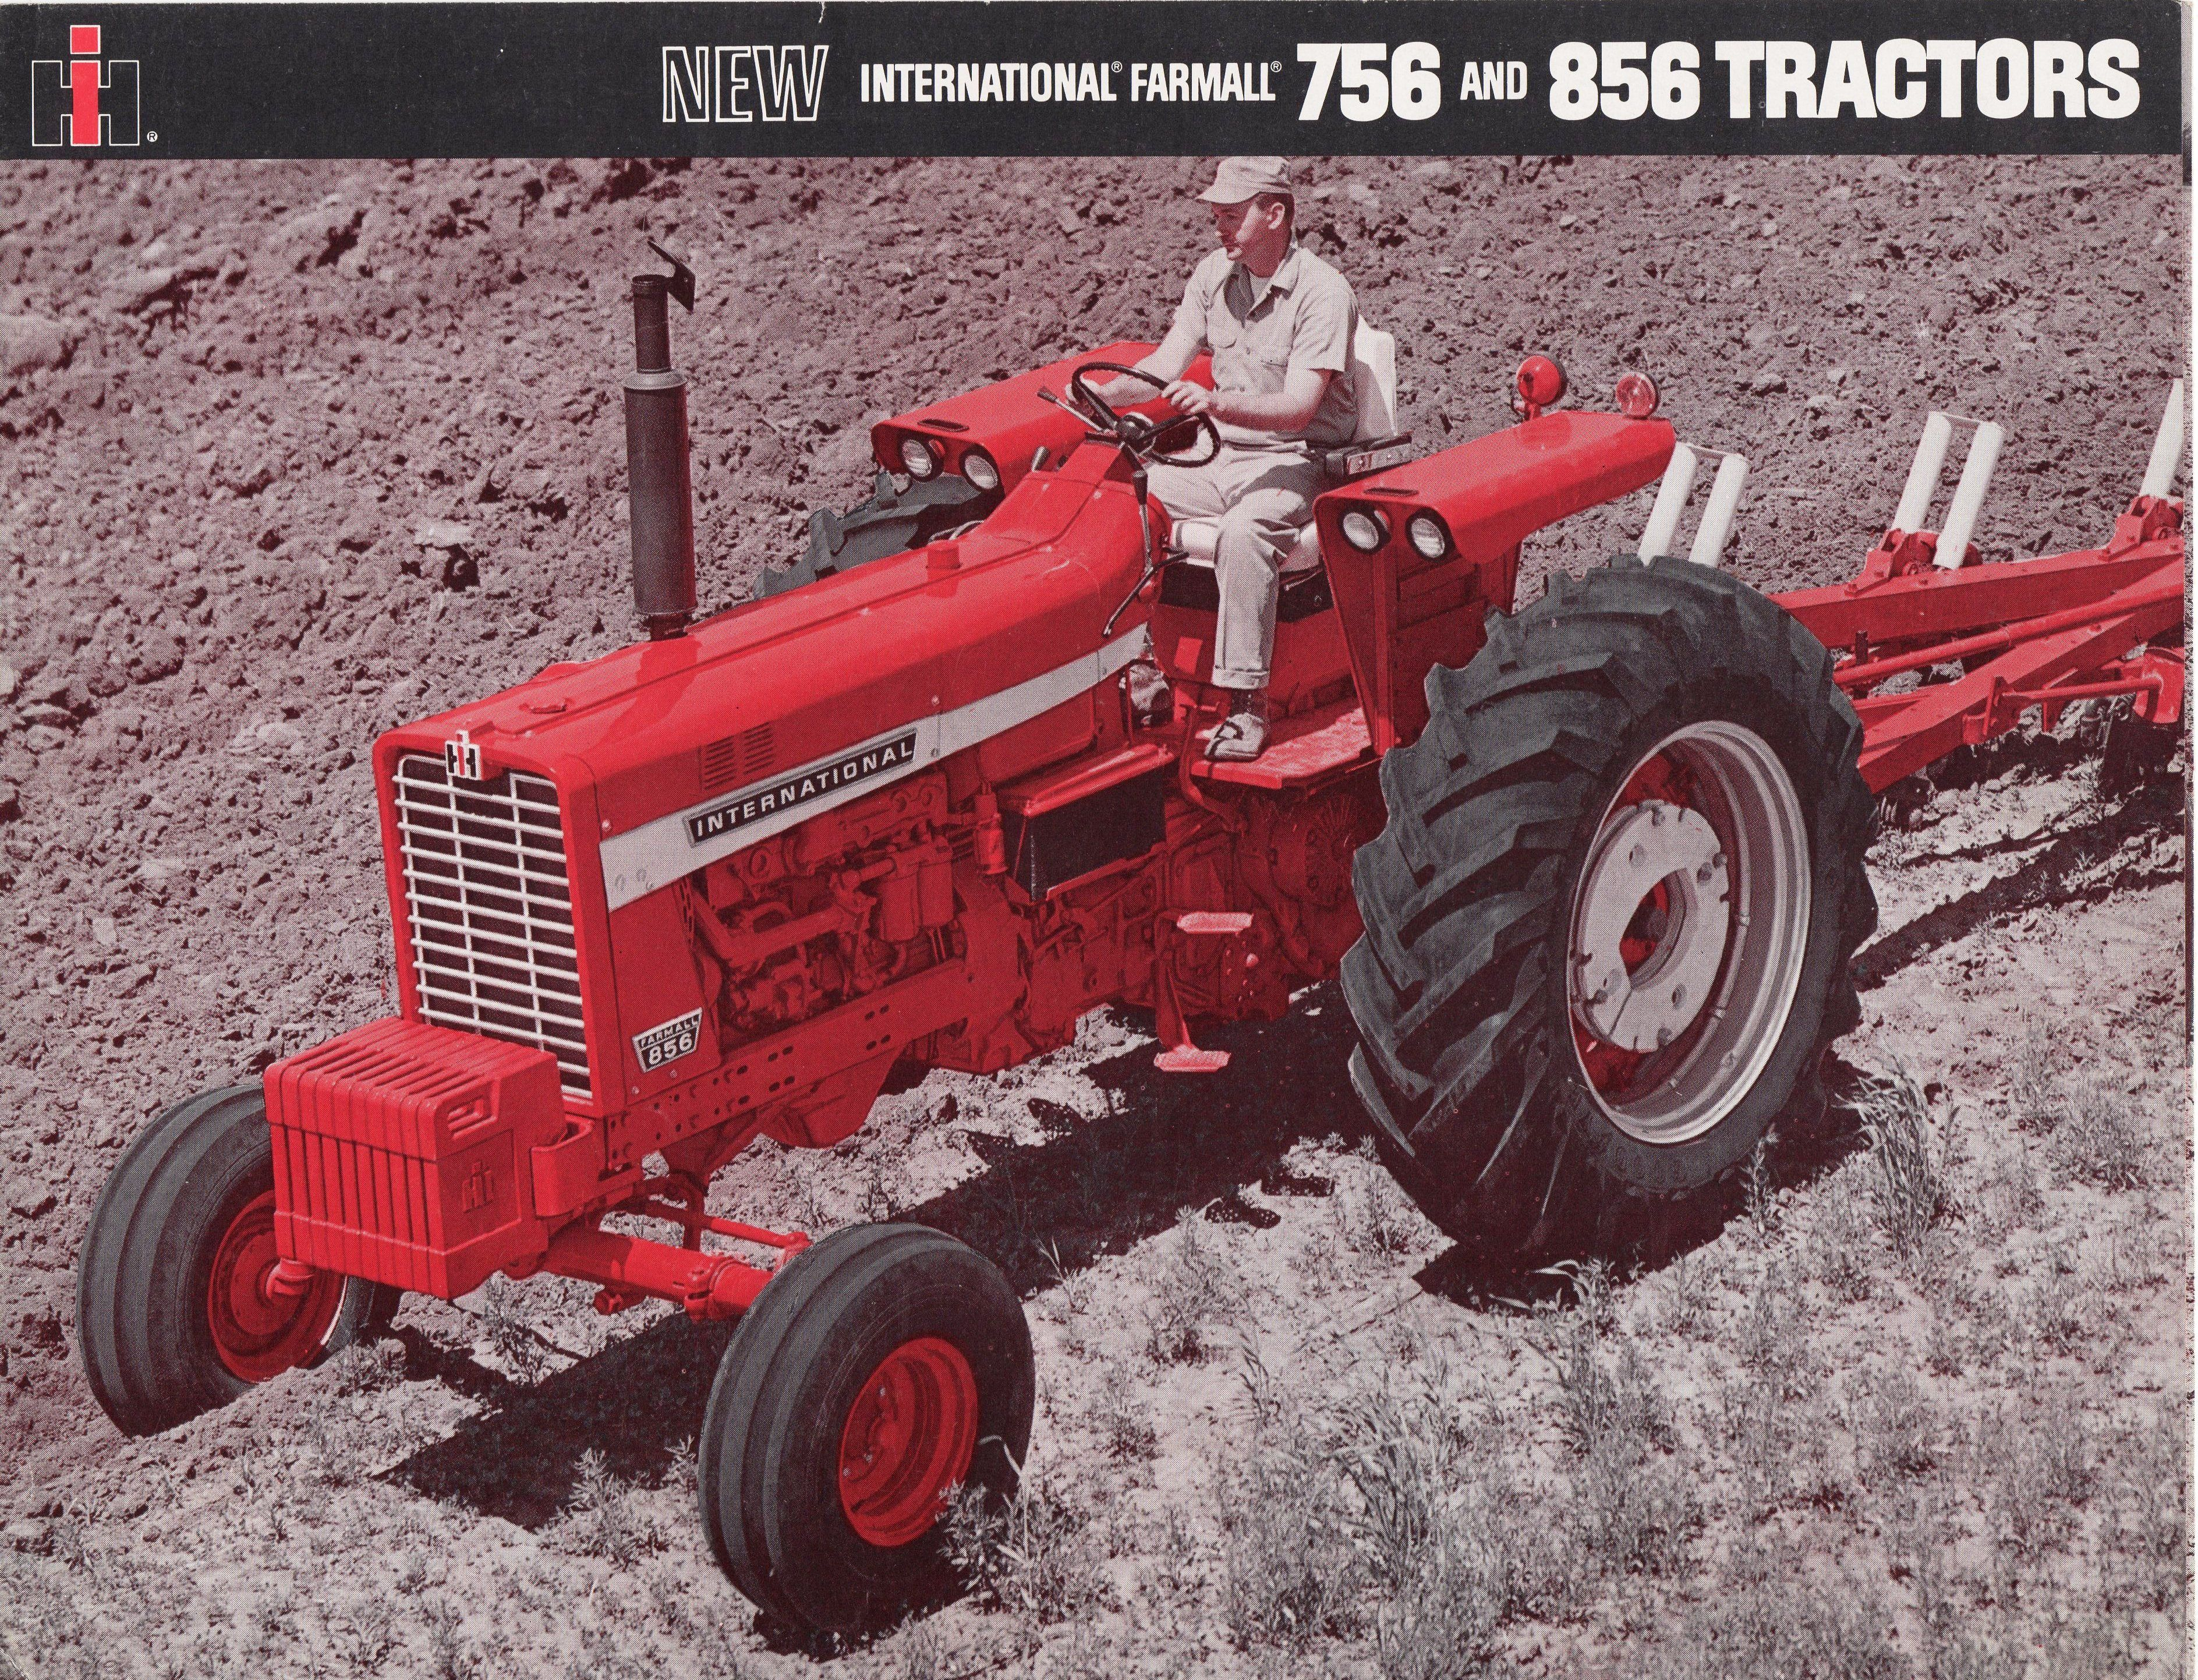 Farmall 756 Tractor Wiring Diagram Model Year Ih And Tractors International 3775x2885